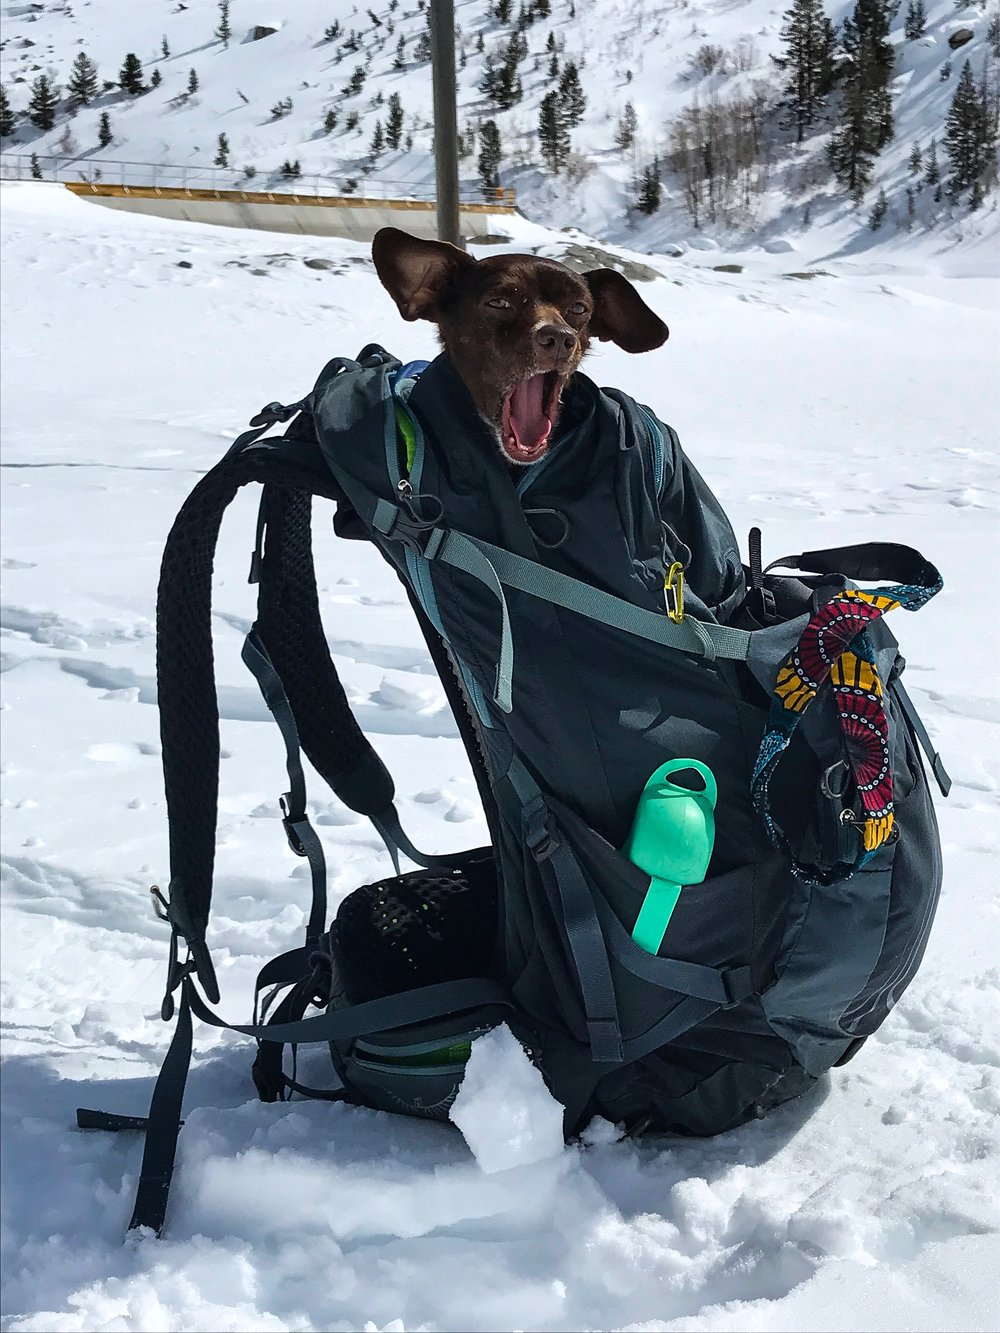 This is my oversized day pack that I purposely carry if I am doing big miles with Moo, as she fits very comfortably in this pack. The water bottle in the side pocket is her dog-friendly water bottle. If I set the pack down on the trail and if she tries to jump into it, that is a signal that she is tired and wants a lift.